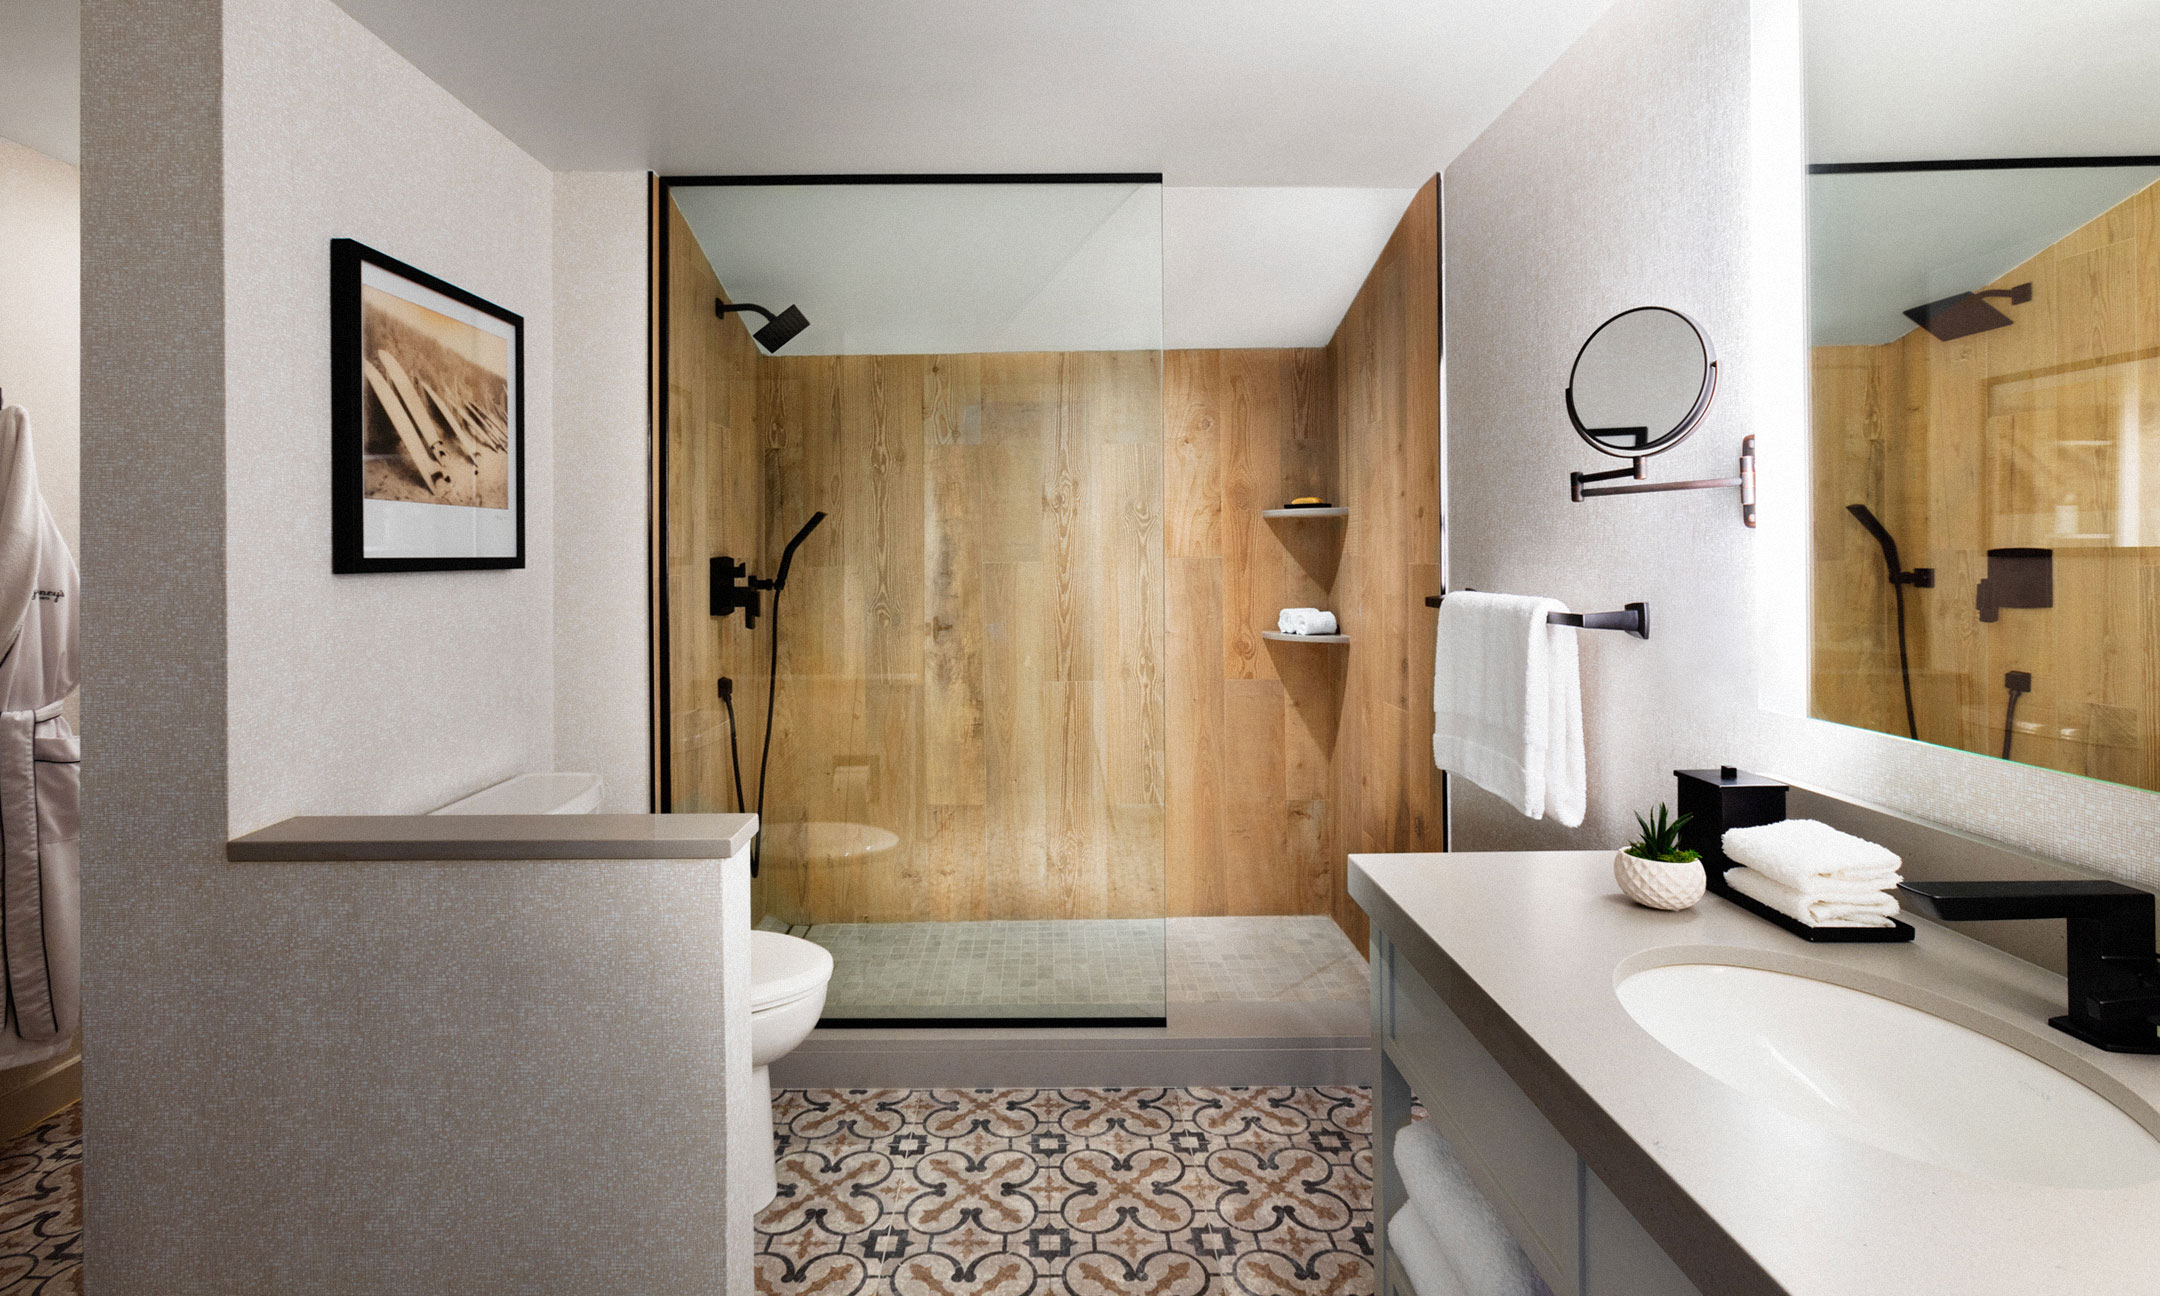 bathroom with wood wall shower, sink and mirror